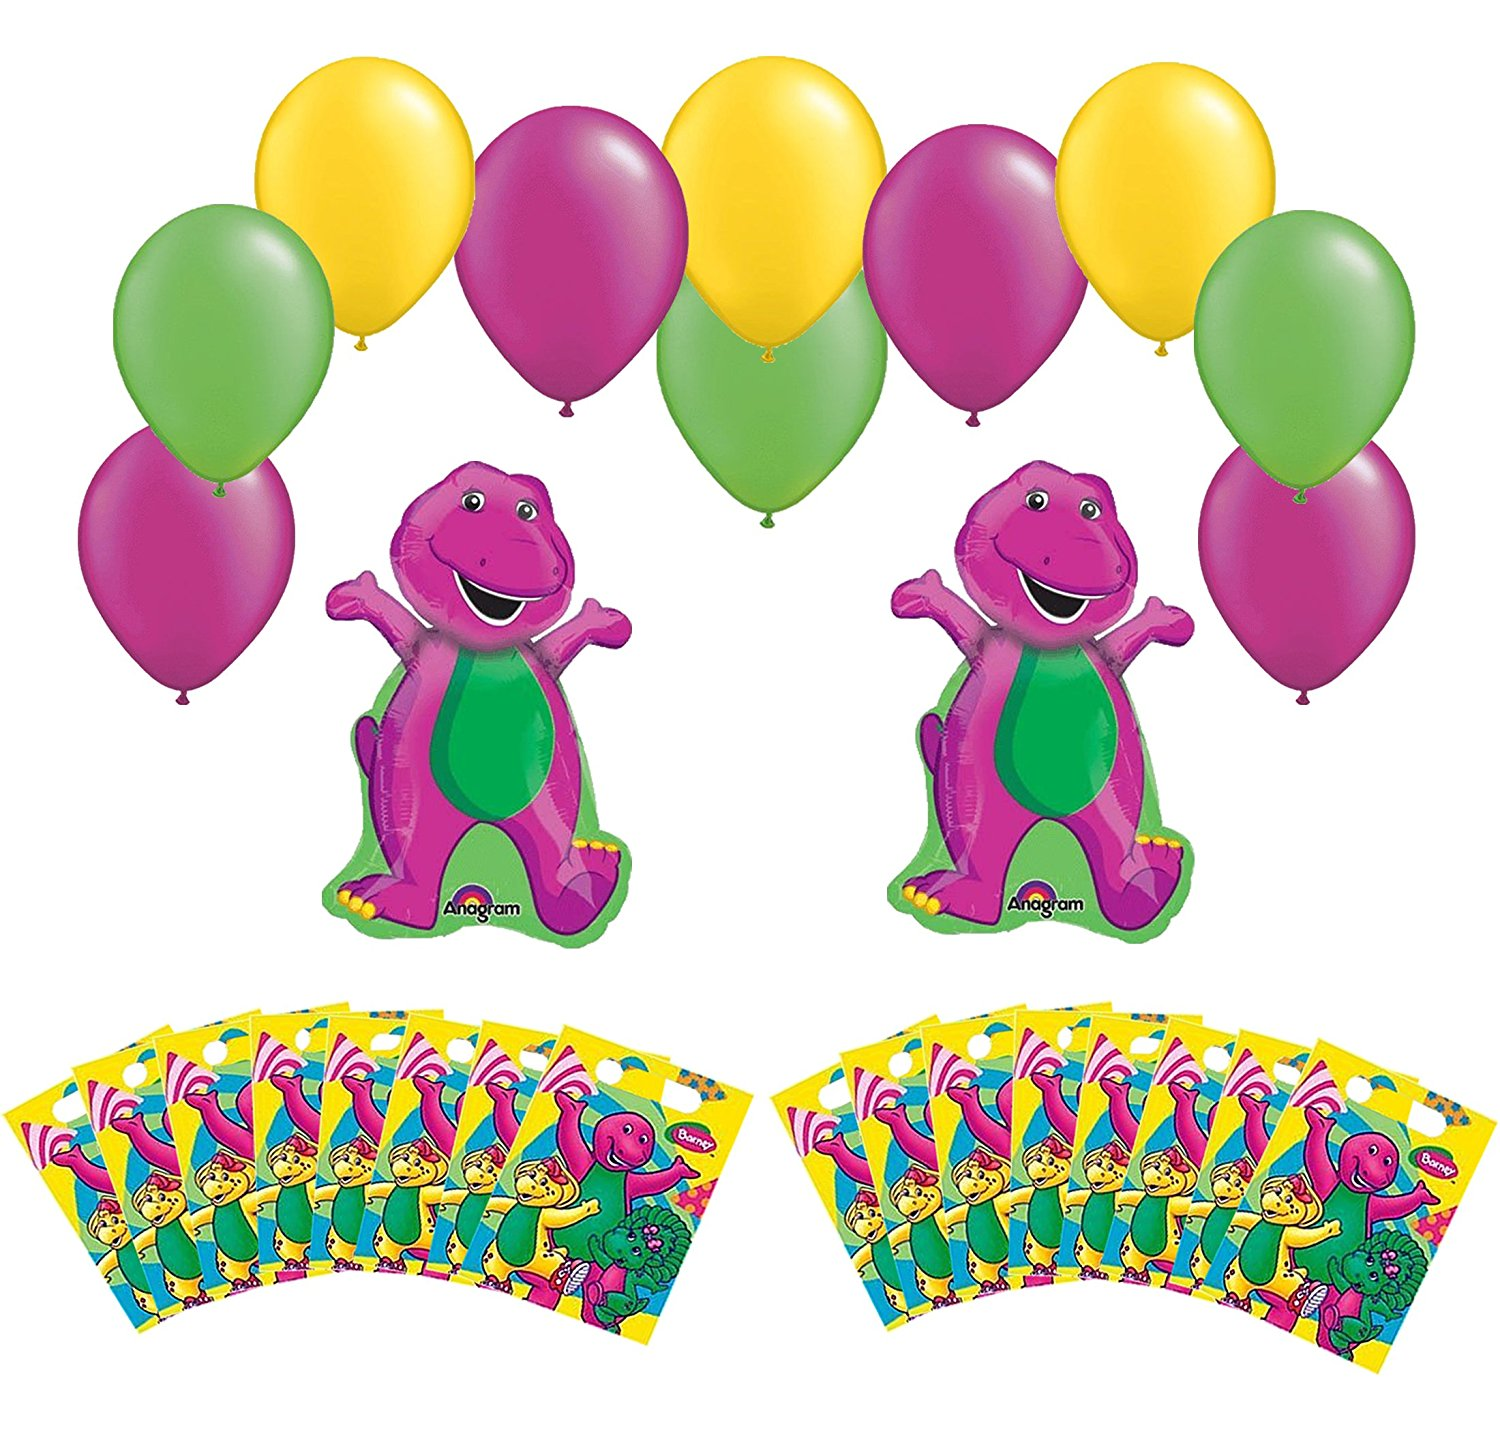 Cheap Barney Party, find Barney Party deals on line at Alibaba.com